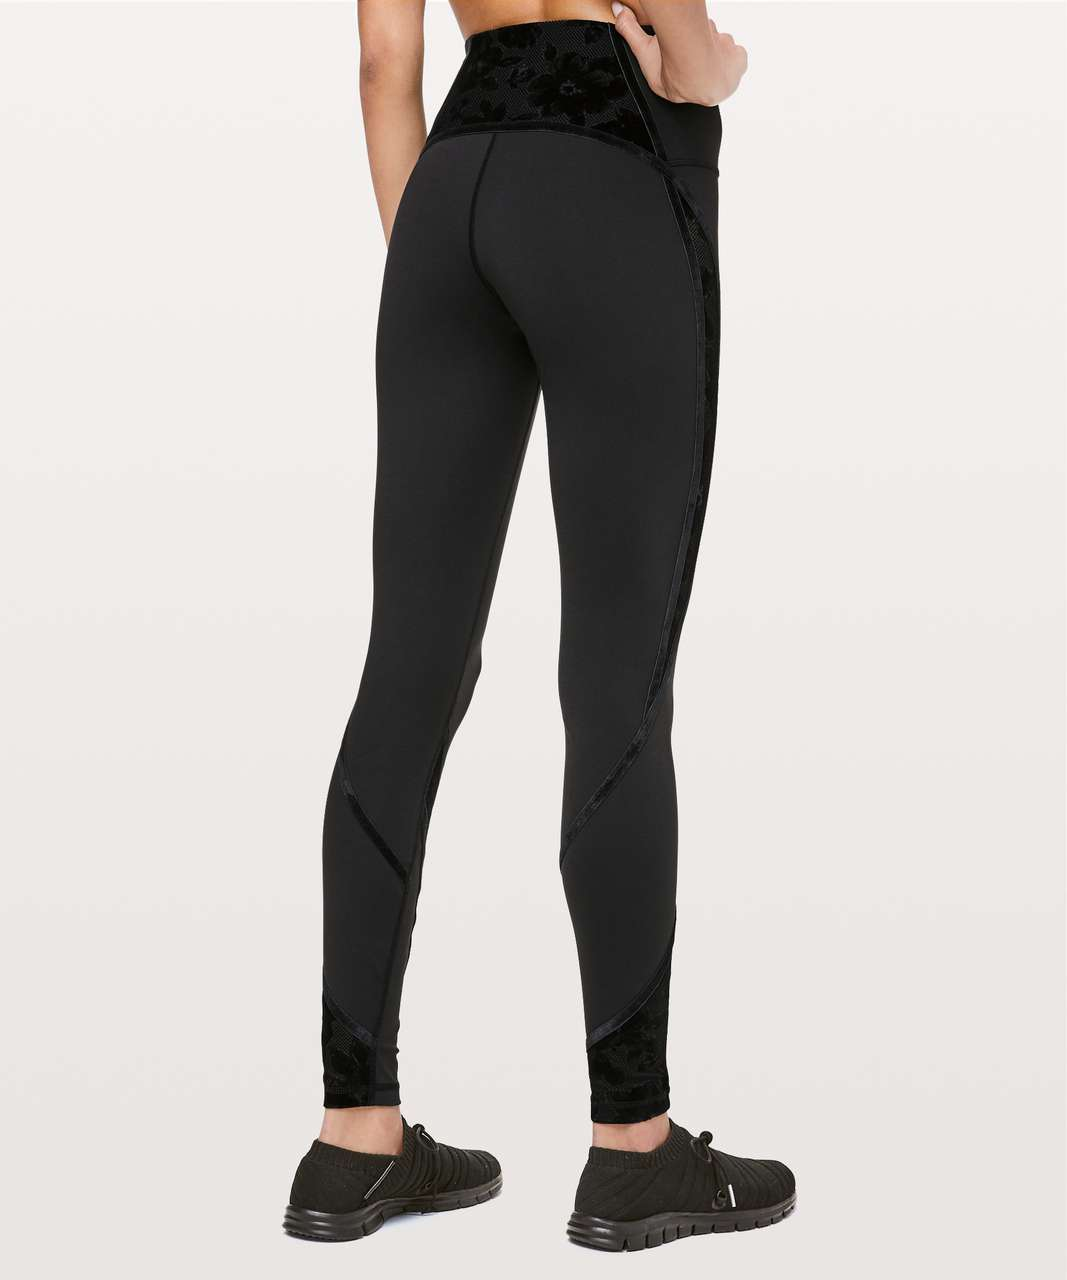 "Lululemon Wunder Under High-Rise Tight* Flocked 28"" - Black / Scatter Floral Black Black"